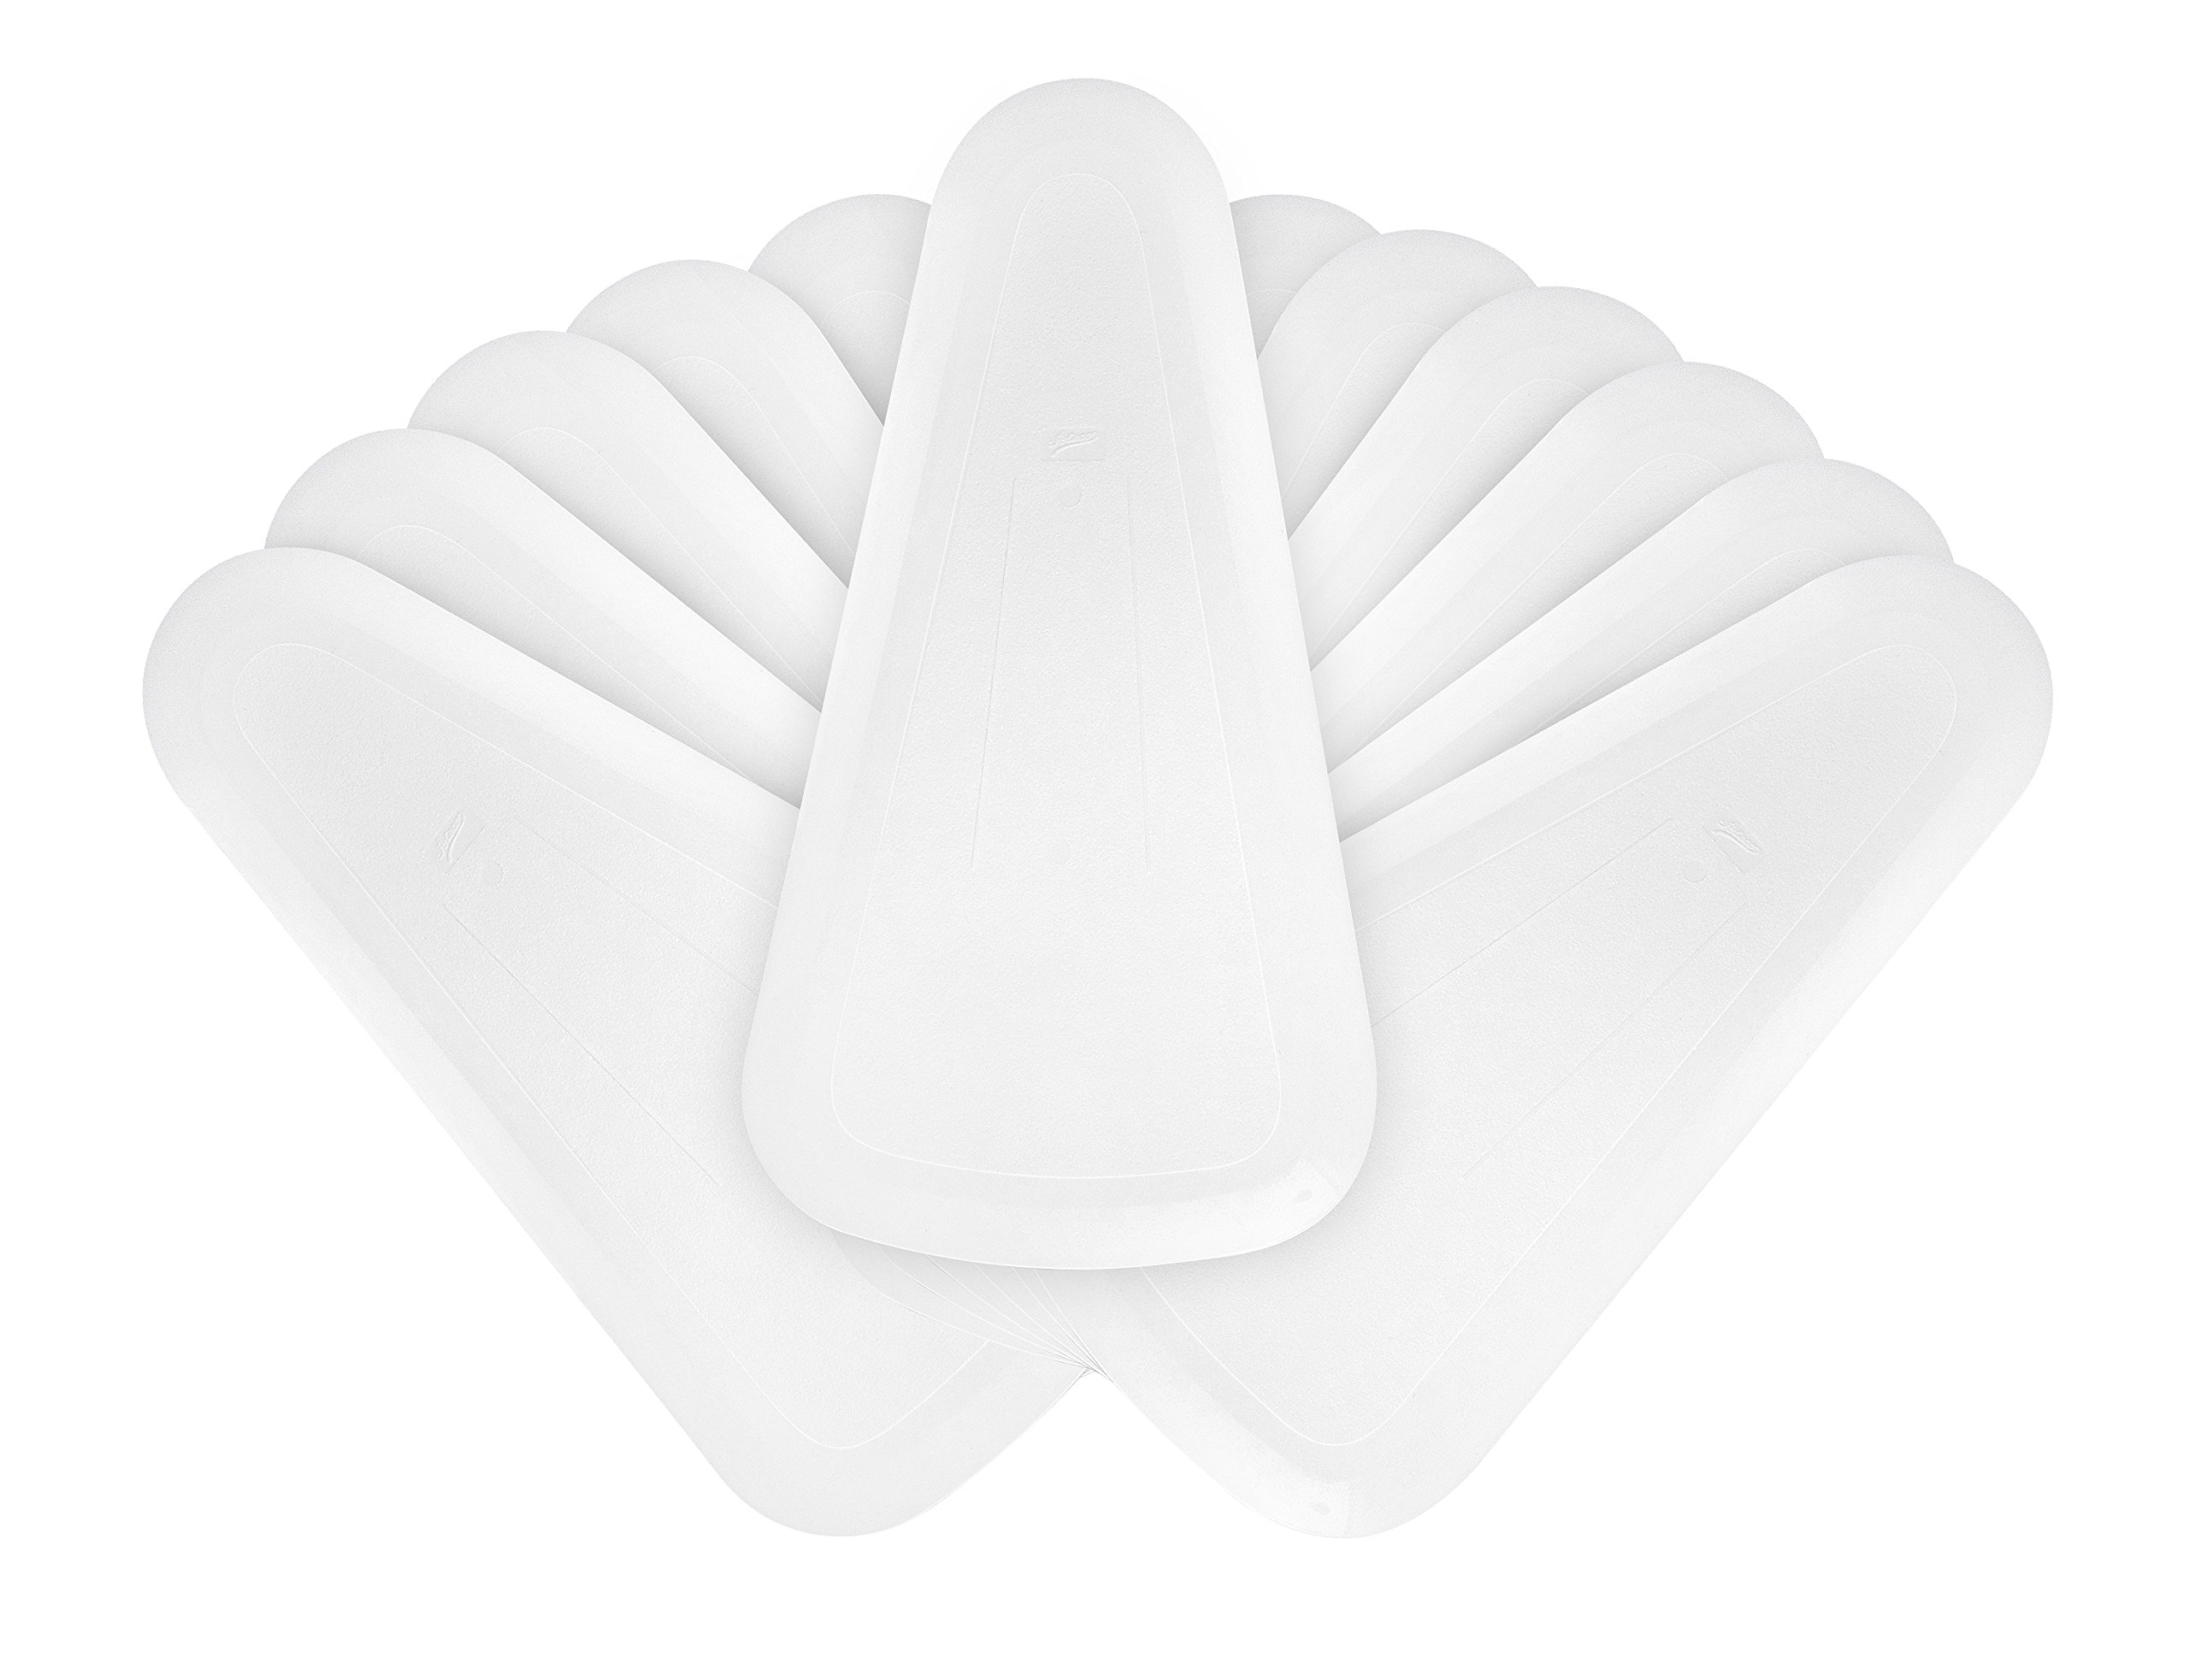 Ateco 1321 Fan Shaped Bowl Scraper Set, 12-Pieces, Flexible Food-safe Plastic